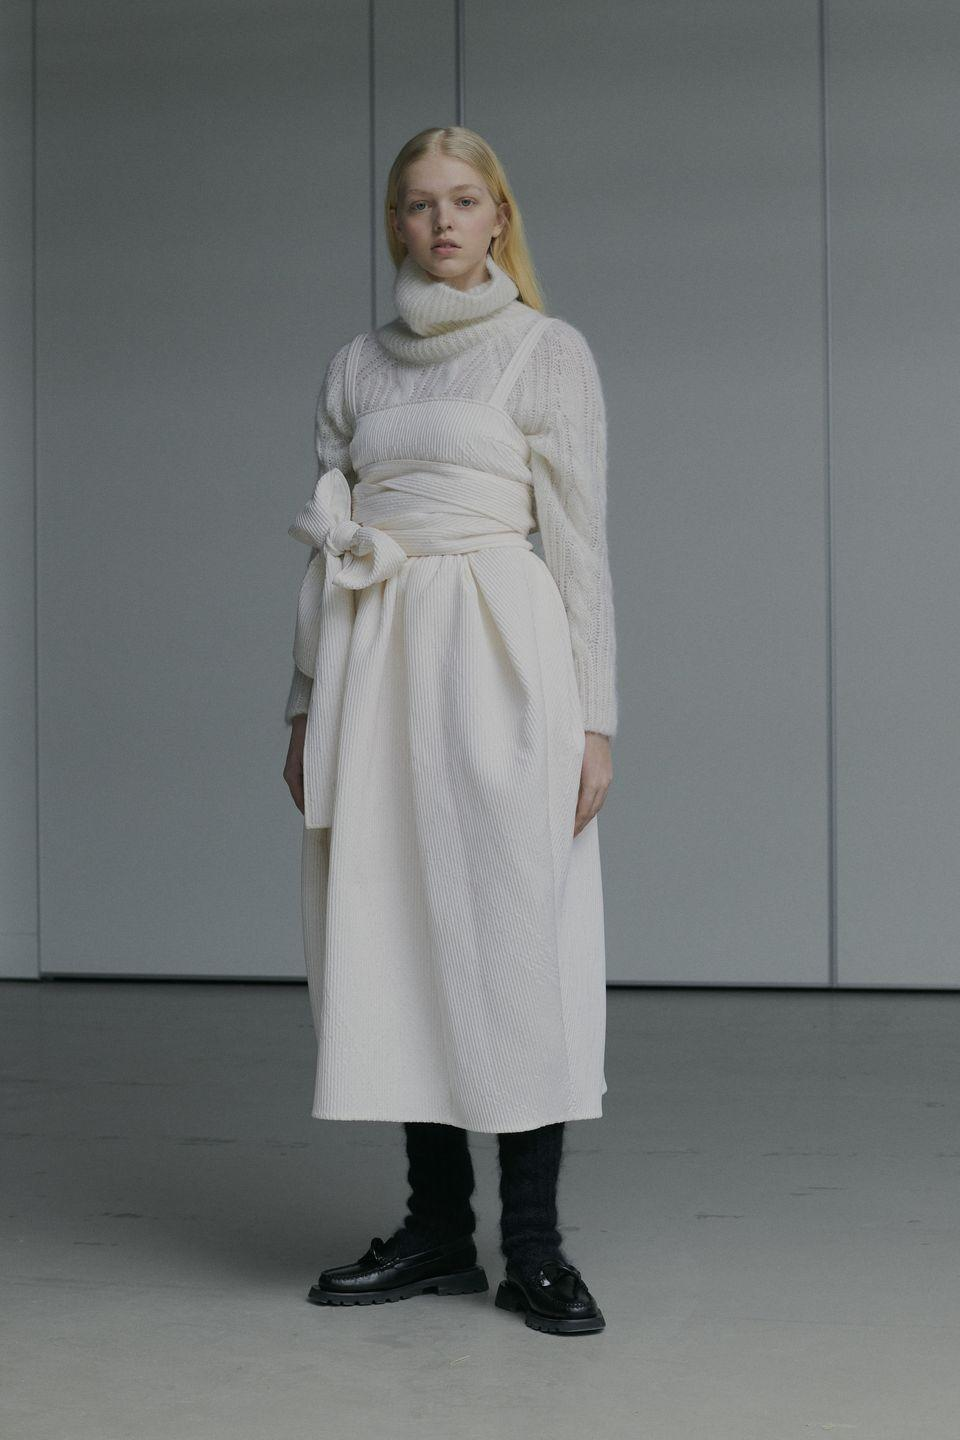 "<p>""For autumn/winter 2021, there was no moodboard pinned up in Cecilie Bahnsen's studio in Copenhagen,"" the brand explains. ""Instead her small team spent a month surrounded by the haute couture fabrics that have become synonymous with the label: quilted silks, floral fil-coupé, pleated organza and matelassé that falls on the body like the softest paper, light yet voluminous. Creating and developing new silhouettes and details on the stand.""</p><p>Focussing on these materials made for what Bahnsen hopes was a more intimate collection, doubling down on what she has become so well known for, but also expanding on elements she has only touched on in the past, including outerwear through a now ongoing partnership with Mackintosh, and she also explored layering more than ever before.</p><p>The collection was split into four sections, separated by colour, and this is how they will drop throughout the season, something which was mirrored in film 'The City' created as part of the presentation.</p><p>""The palette weaves through greys, blacks and blues to pale lemon with glistens of orange embroidery – moving out of the darkness into light.""</p><p><a href=""https://ceciliebahnsen.com/"" rel=""nofollow noopener"" target=""_blank"" data-ylk=""slk:Watch the film, and see the entire collection, here."" class=""link rapid-noclick-resp"">Watch the film, and see the entire collection, here.</a></p>"